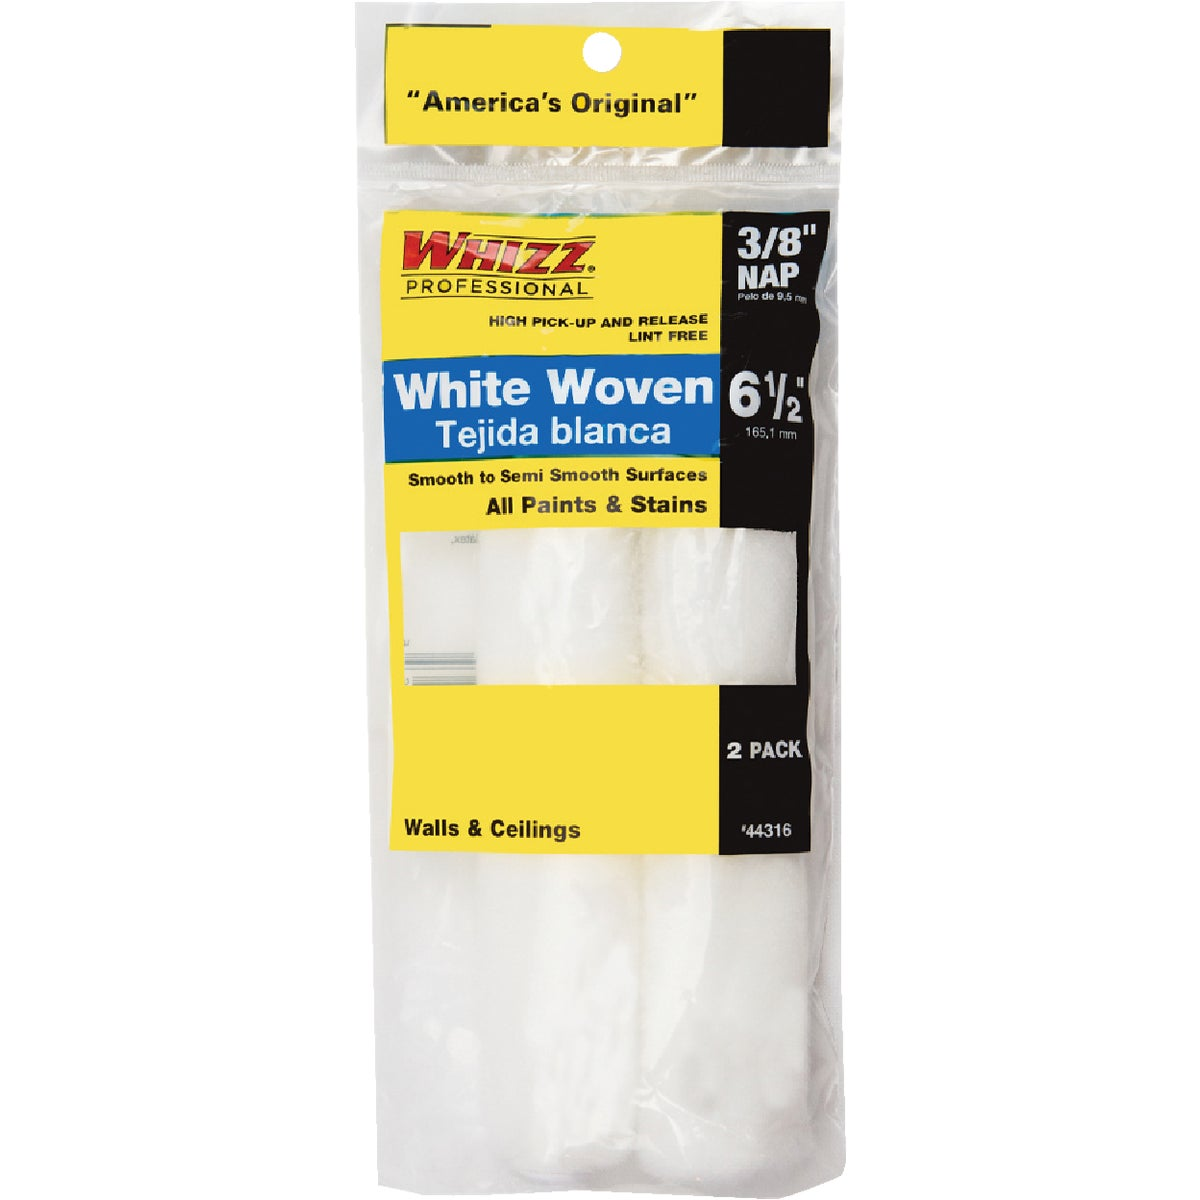 "2PK 6.5"" REPLCMNT COVERS - 44316 by Whizz Roller System"